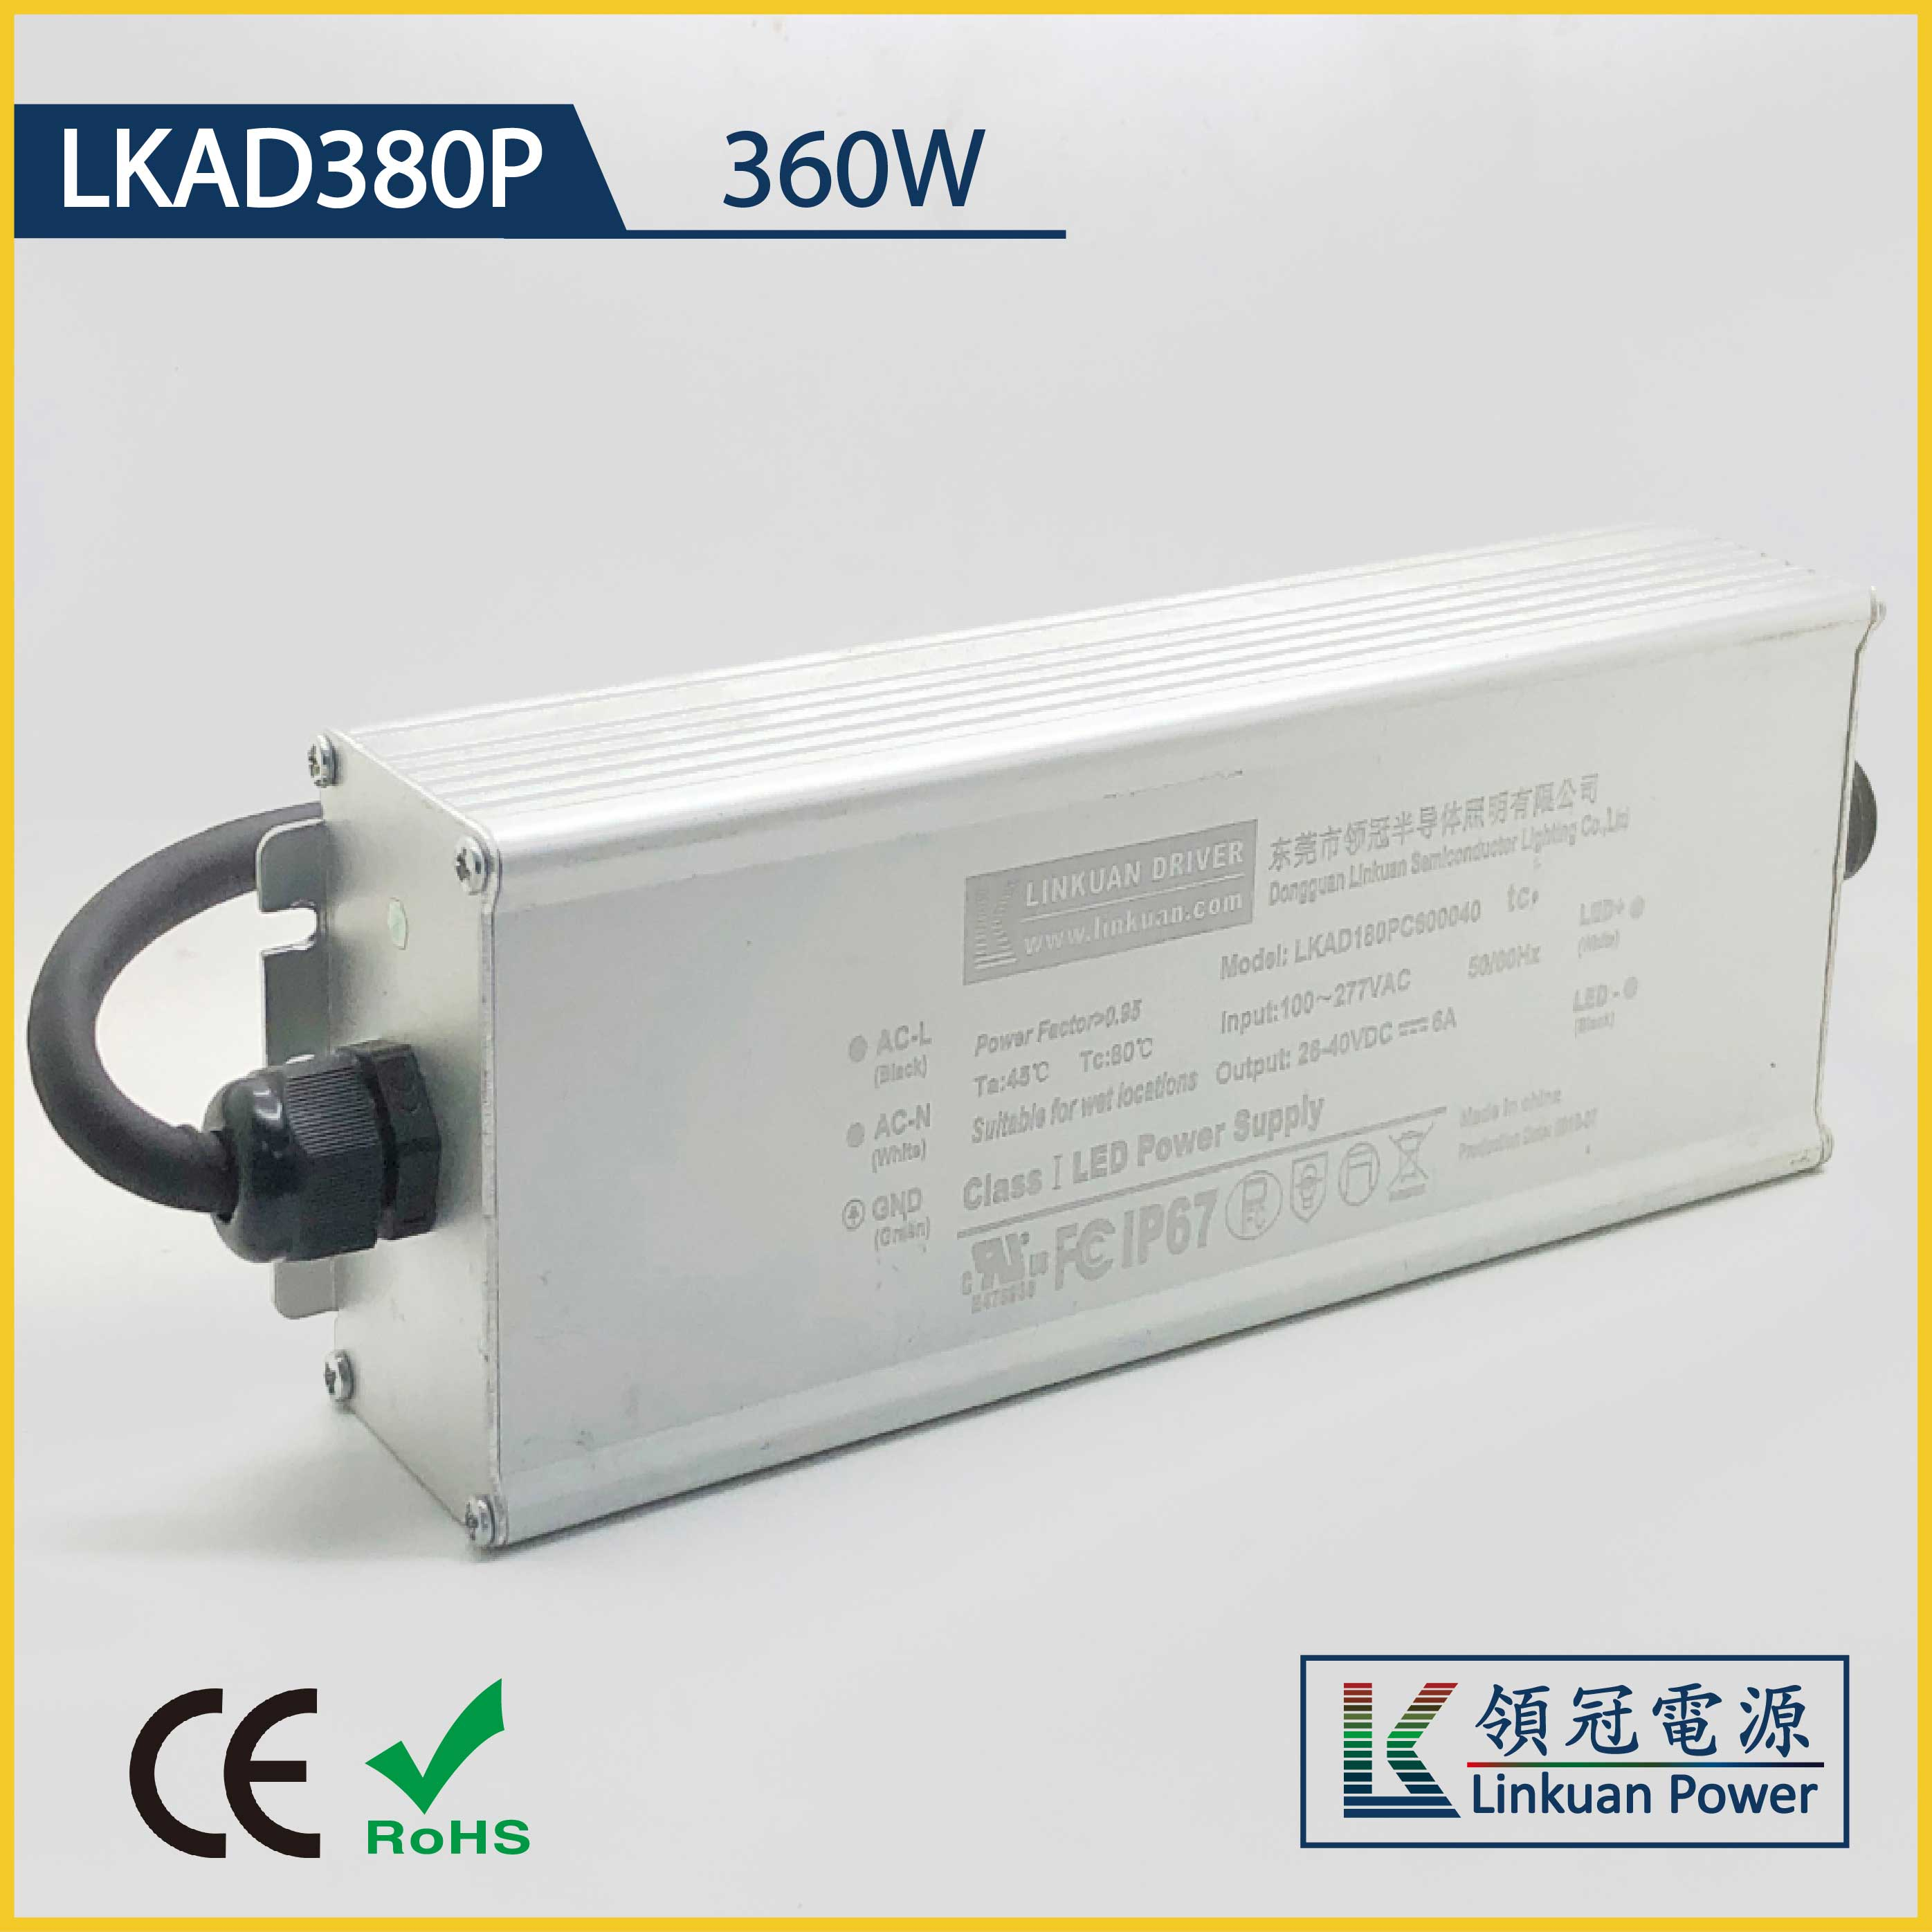 LKAD380P 360W 12/24V 30A/17A 0-10V Dimming LED drivers